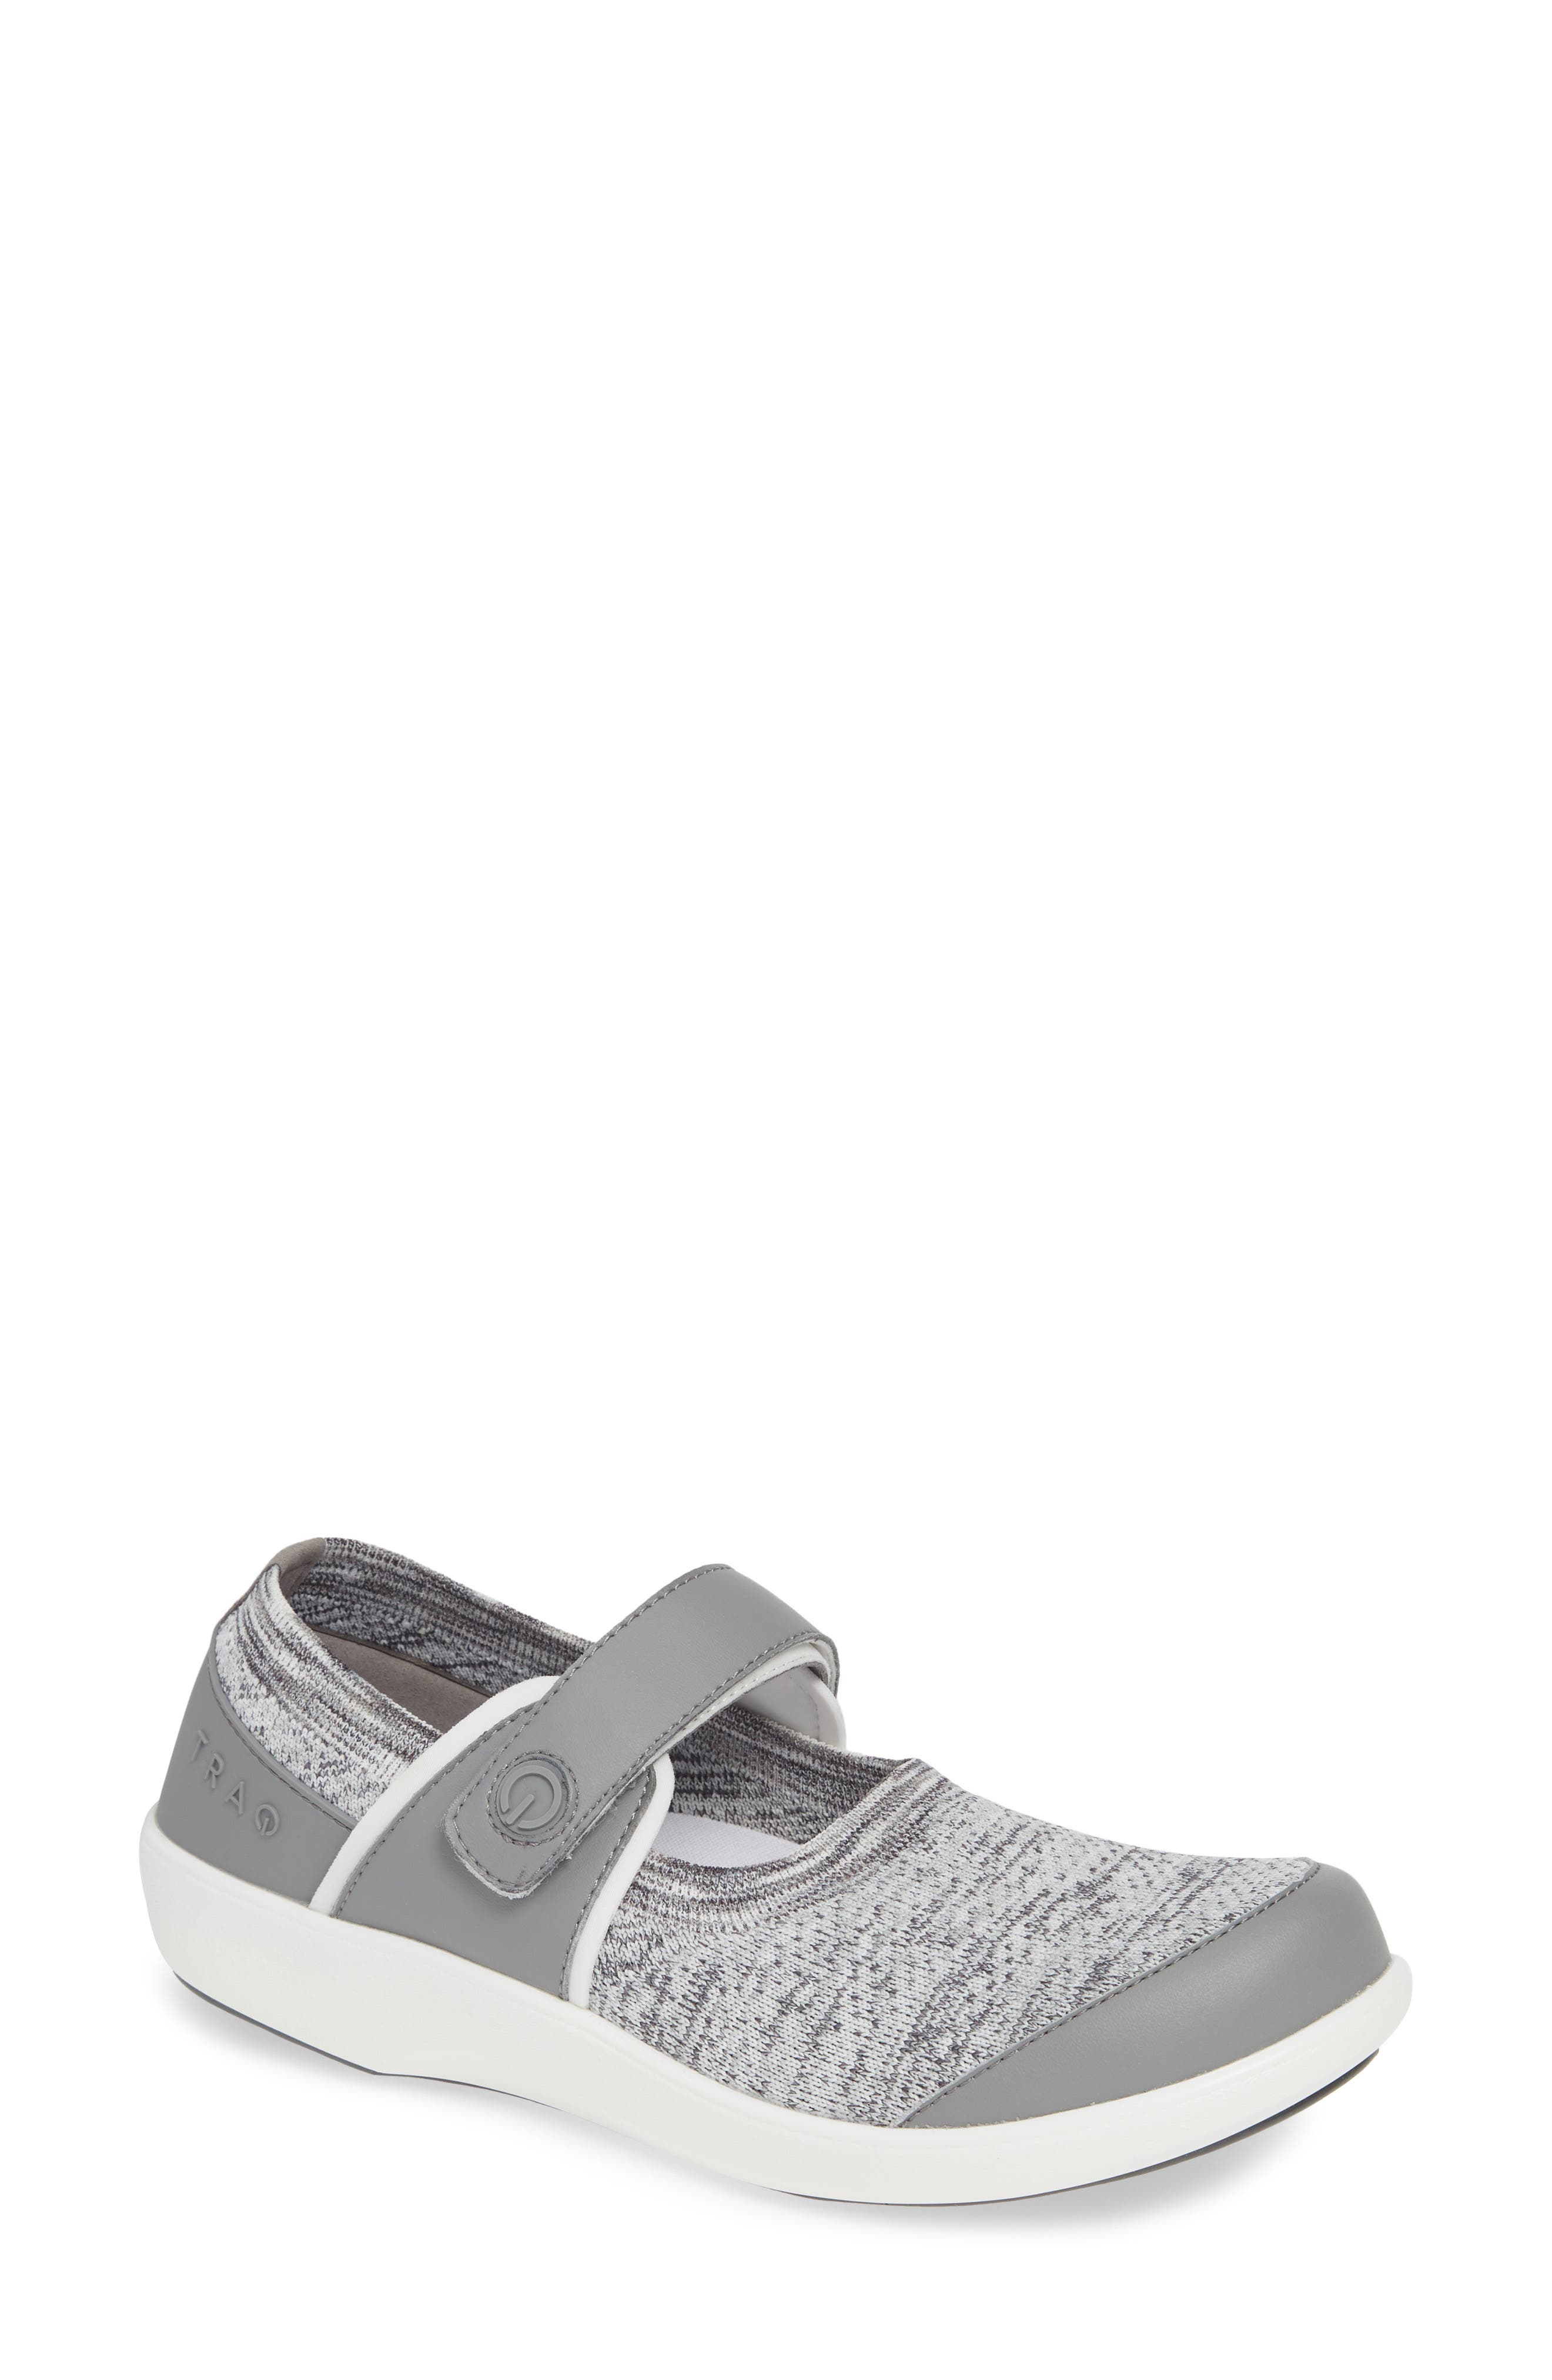 ALEGRIA, Qutie Mary Jane Flat, Main thumbnail 1, color, SOFT GREY LEATHER